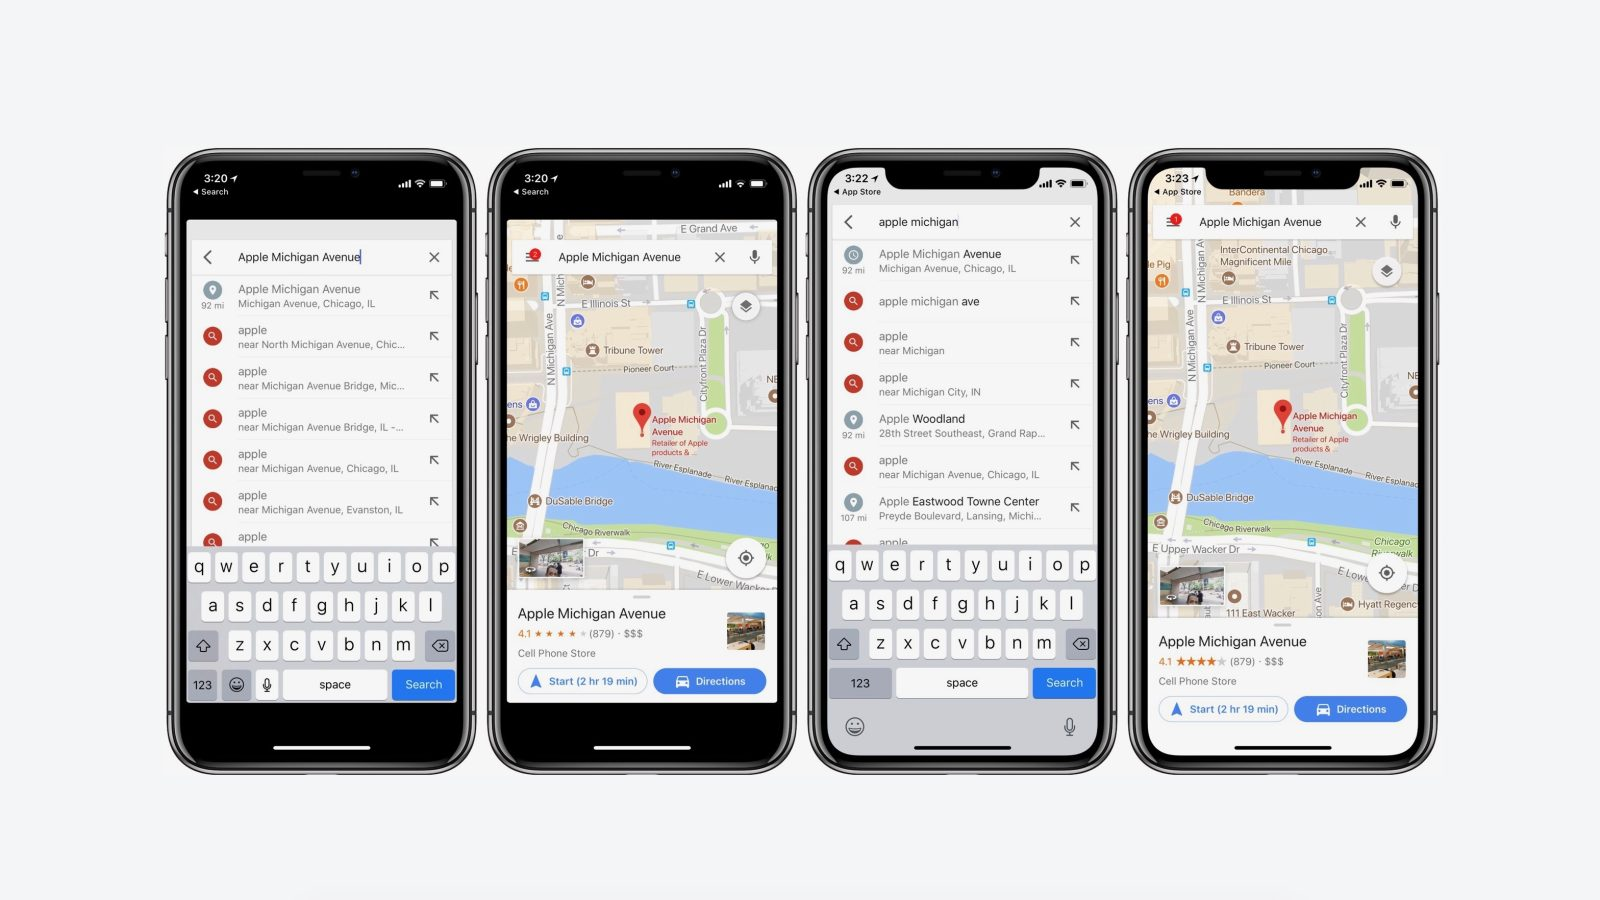 Google Maps for iOS gets update with iPhone X support - 9to5Mac on google map maker, google drive update, google moon, apple app store update, satellite map images with missing or unclear data, apple maps update, technology update, yahoo! maps, google earth update, google panda update, google art project, google street view, google image search, bing maps update, netflix update, google sky, google mars, facebook update, twitter update, google earth updated, bing maps platform, google latitude, google translate, google voice, google earth, web mapping, google docs, google chrome, gmail update, google goggles, bing maps,